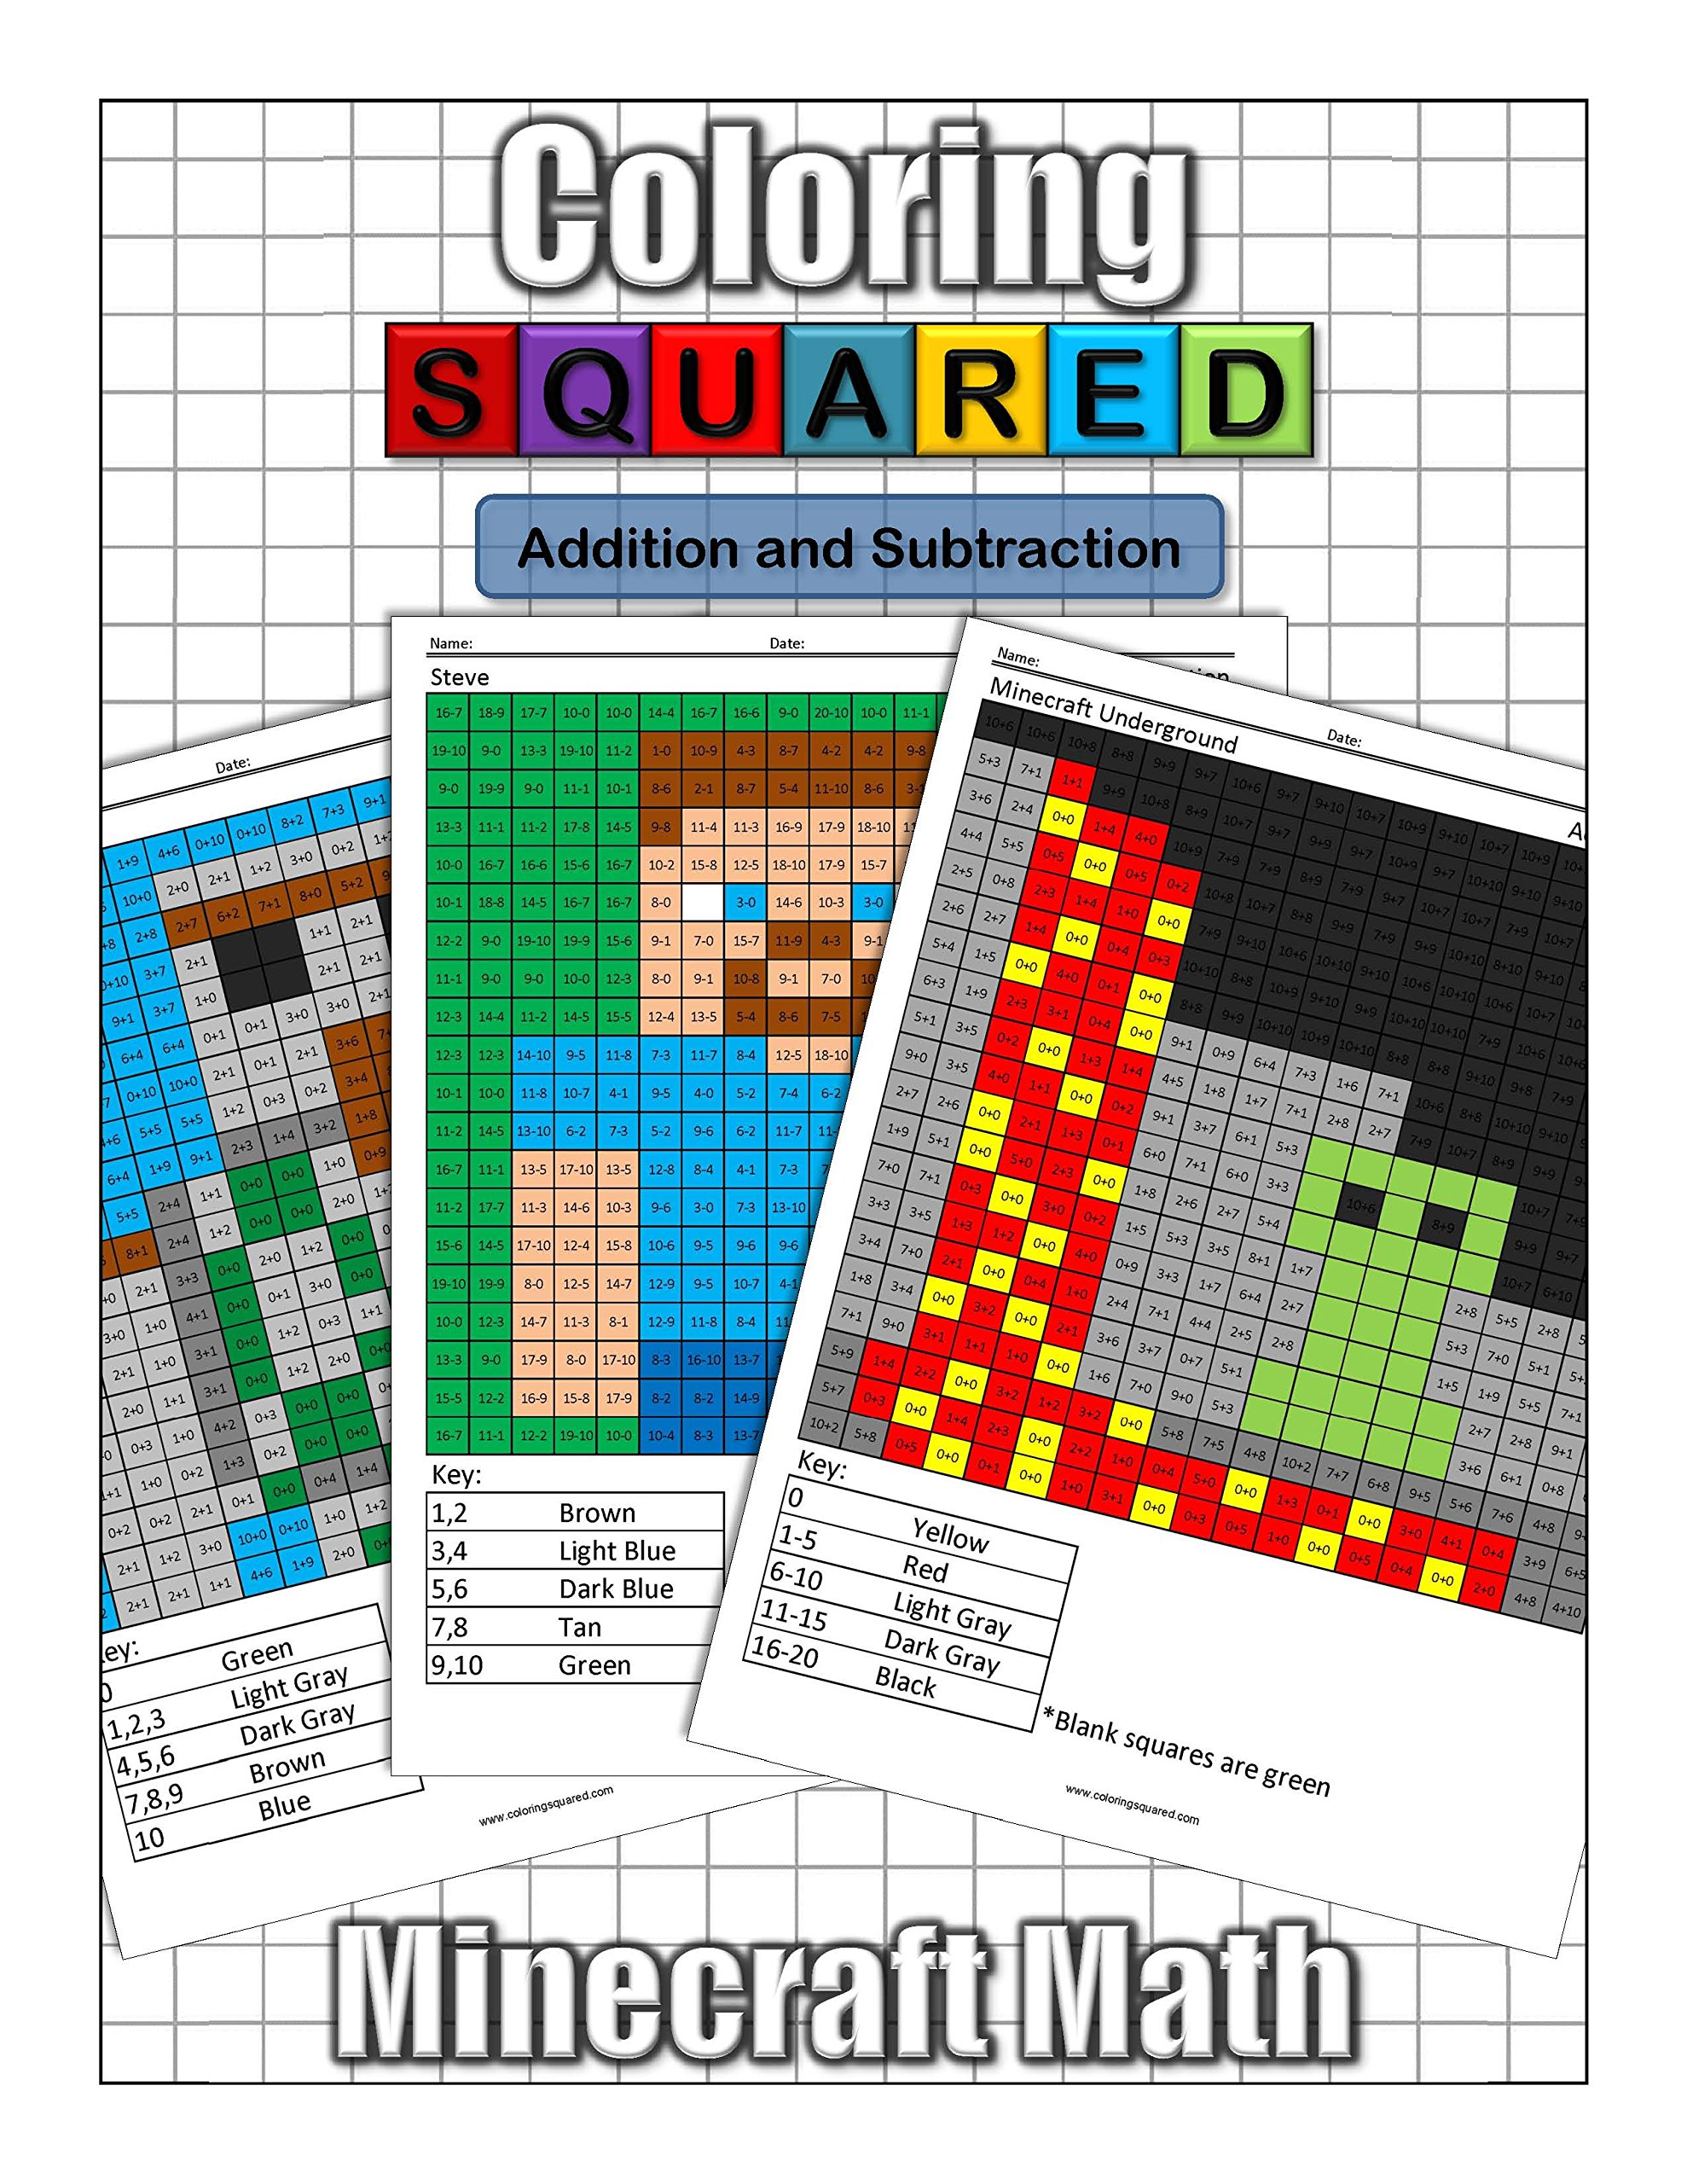 Coloring Squareds Minecraft Addition And Subtraction Cameron Krantzman 9781939668165 Amazon Books